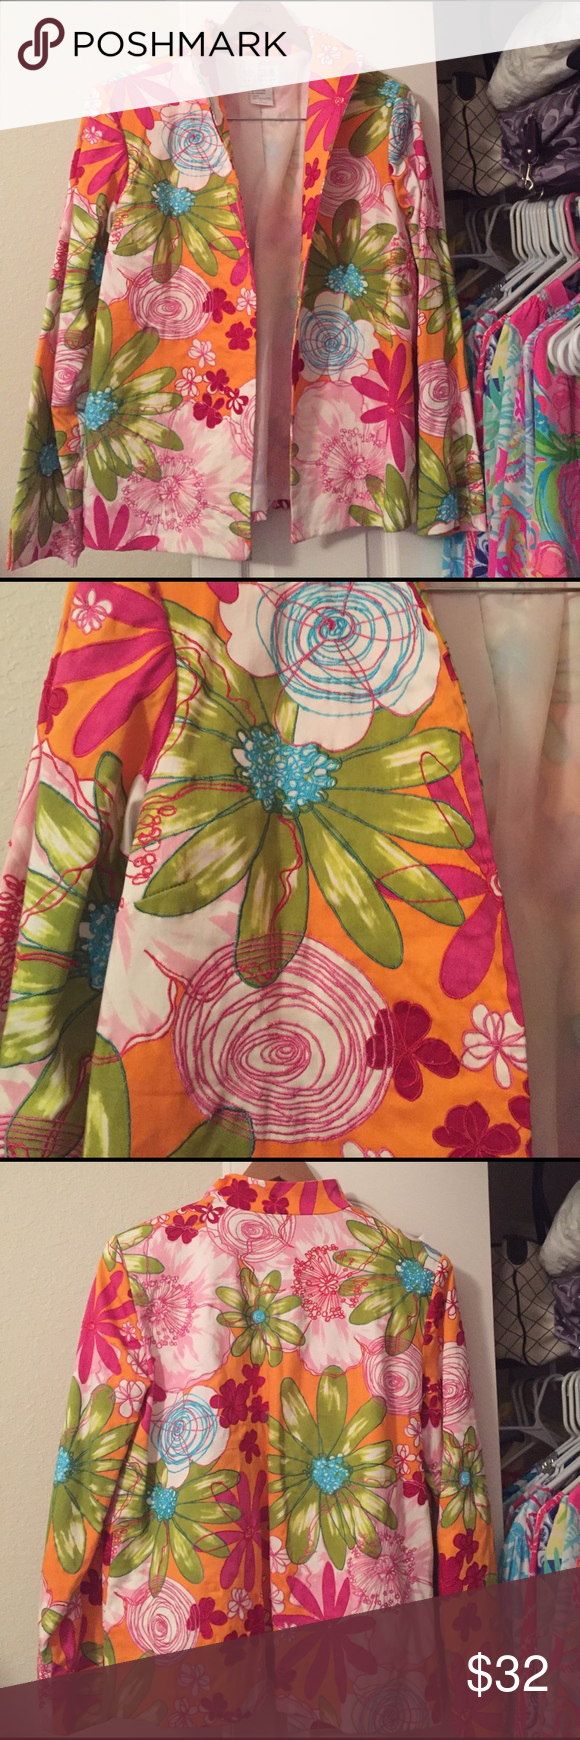 Gorgeous Floral Jacket Excellent Condition Size L Silk Club Collection jacket. Beautiful bright colors perfect for Spring and Summer. Very pretty. ❤ Silk Club Collection Jackets & Coats Blazers